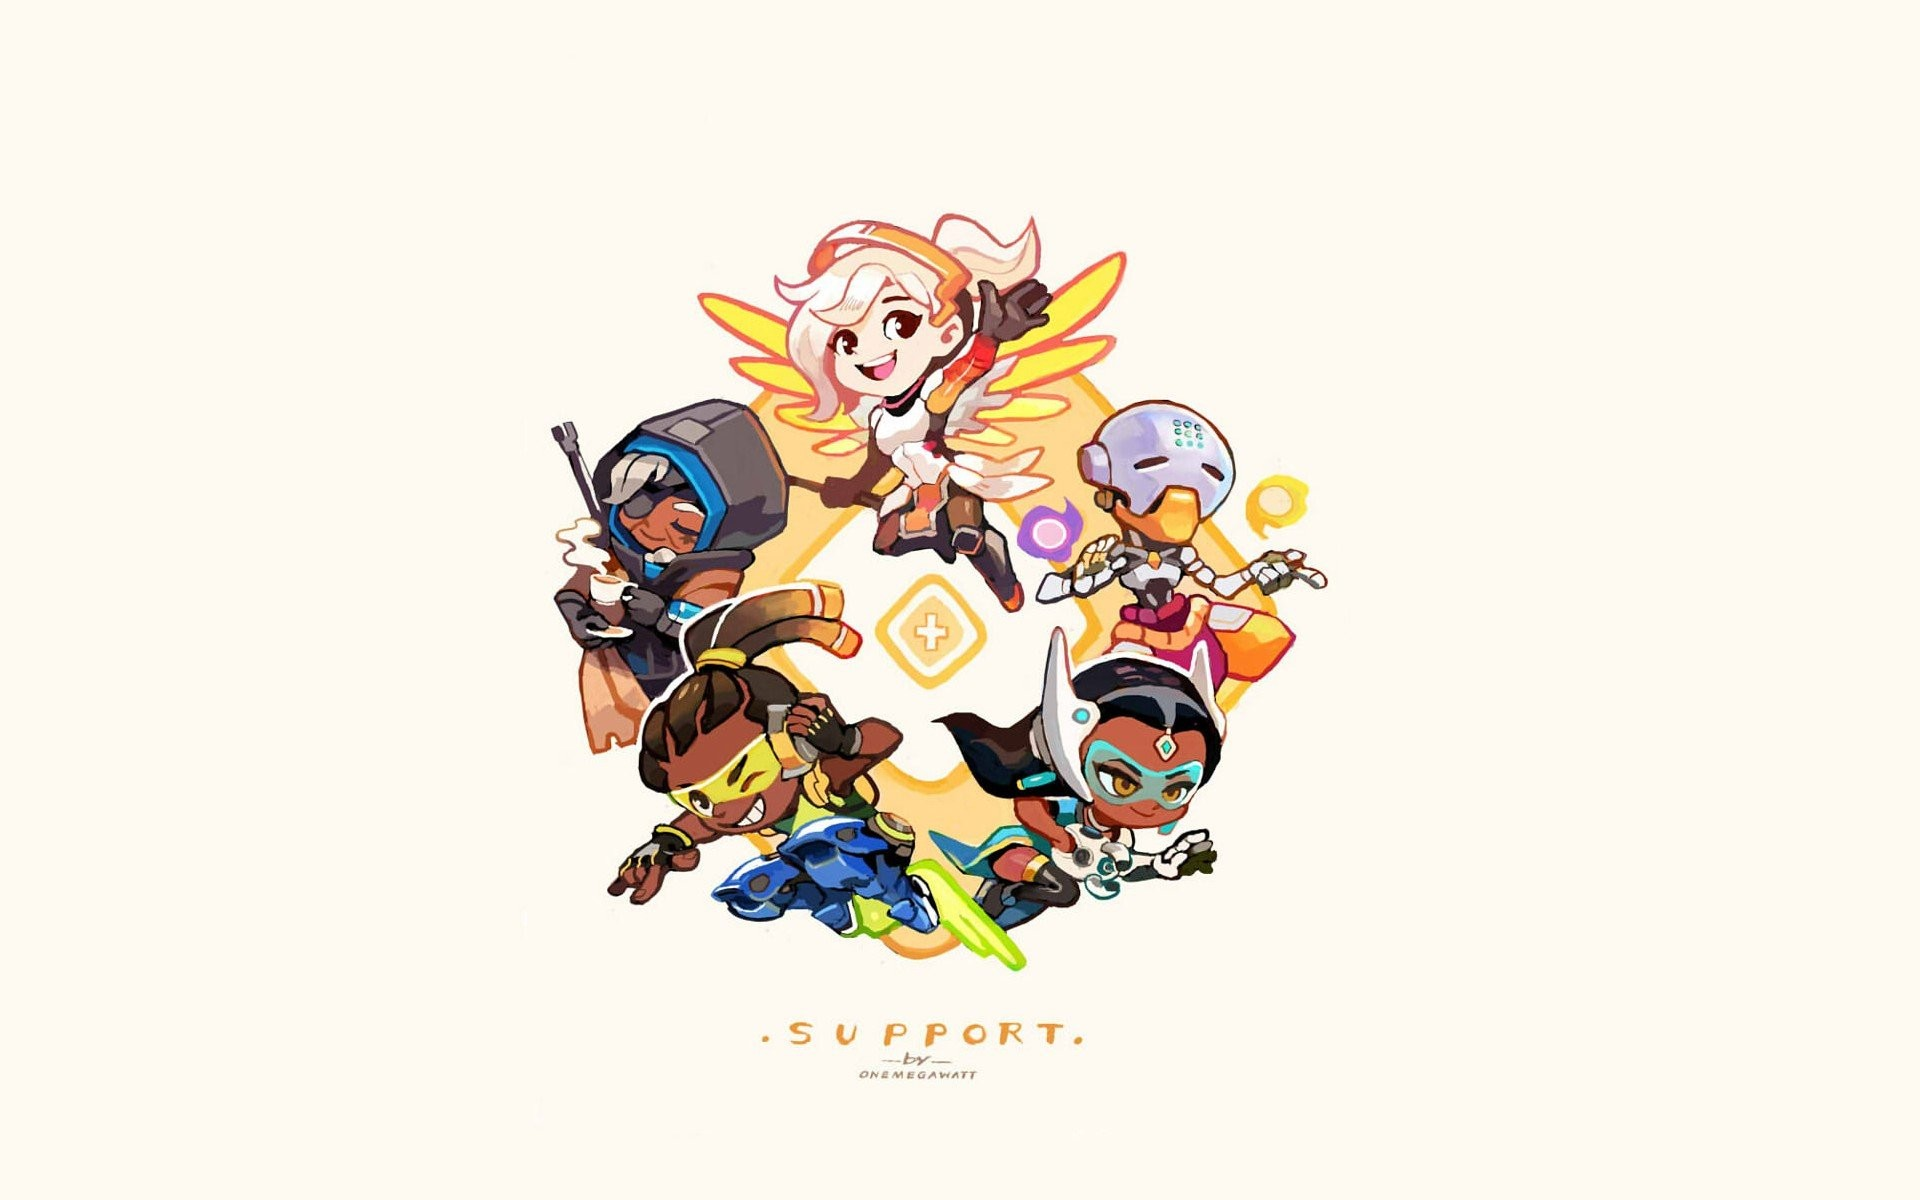 1920x1200 Lúcio (Overwatch), Zenyatta (Overwatch), Overwatch, Ana (Overwatch),  Symmetra (Overwatch), Mercy (Overwatch) HD Wallpapers / Desktop and Mobile  Images & ...